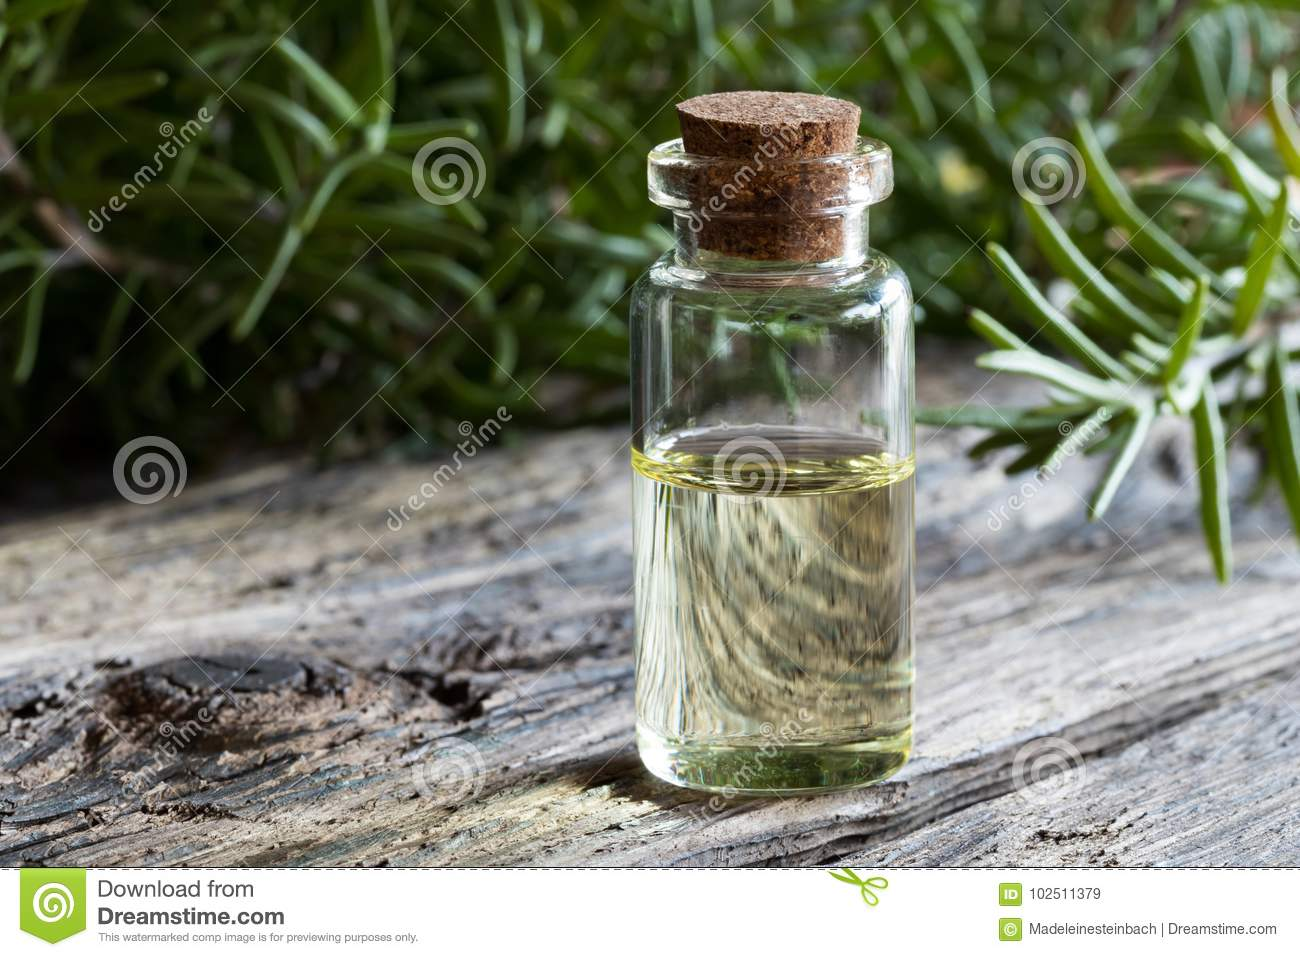 A bottle of rosemary essential oil with rosemary twigs